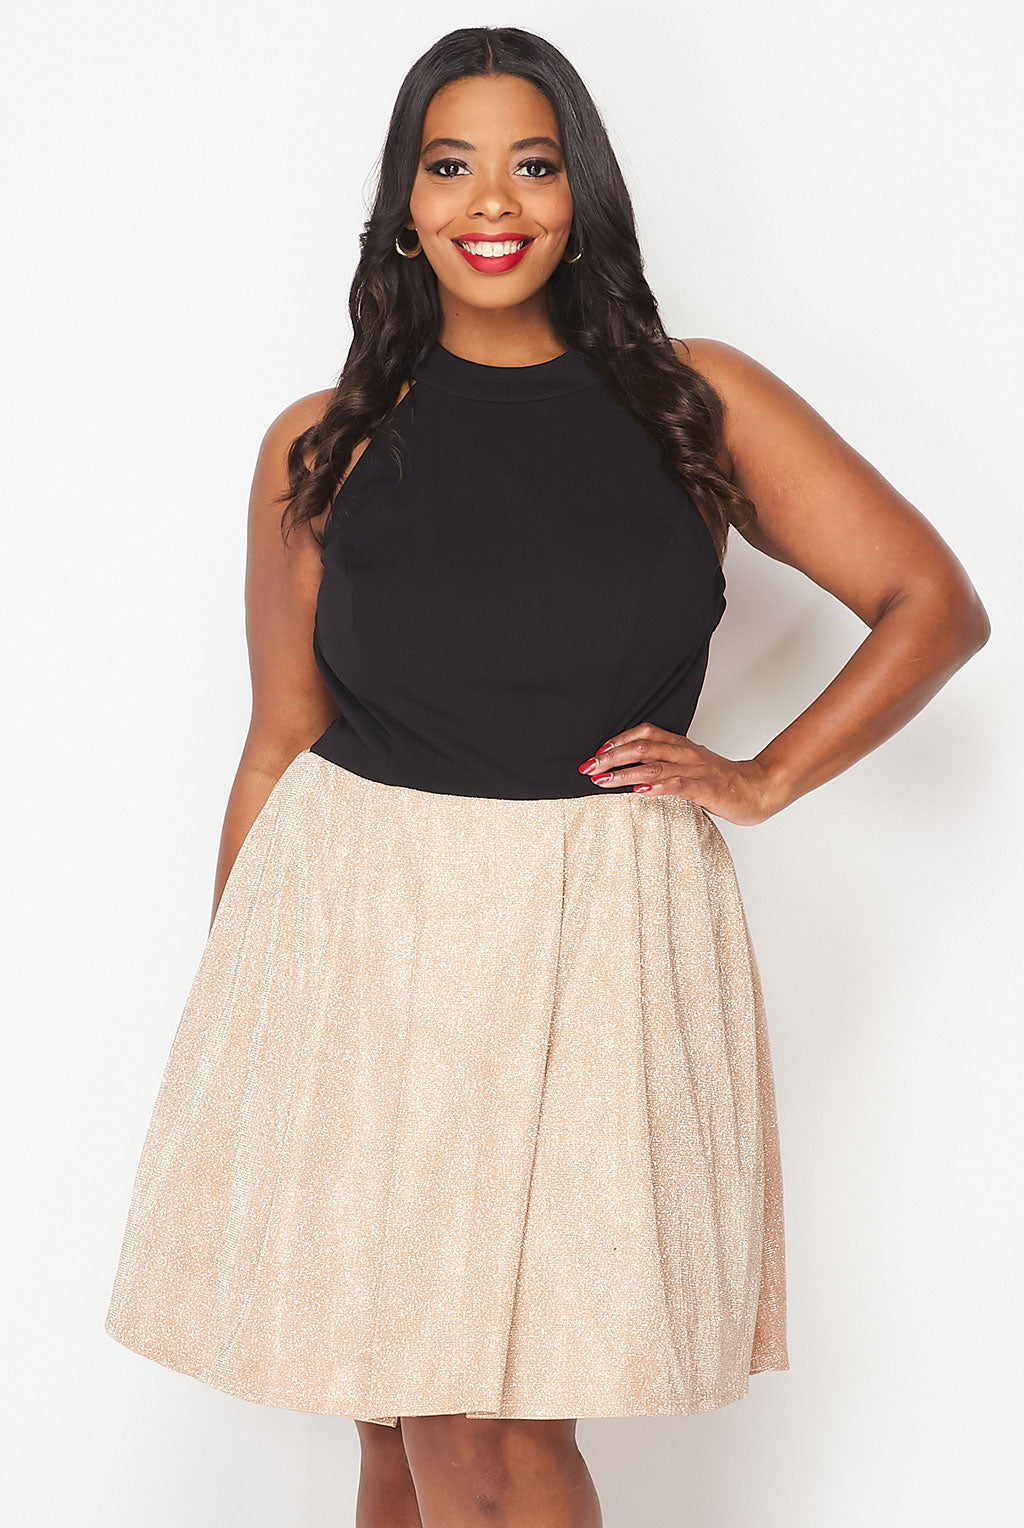 Teeze Me | Halter Top Glitter Skirt Fit And Flare Dress Plus | Gold/Black